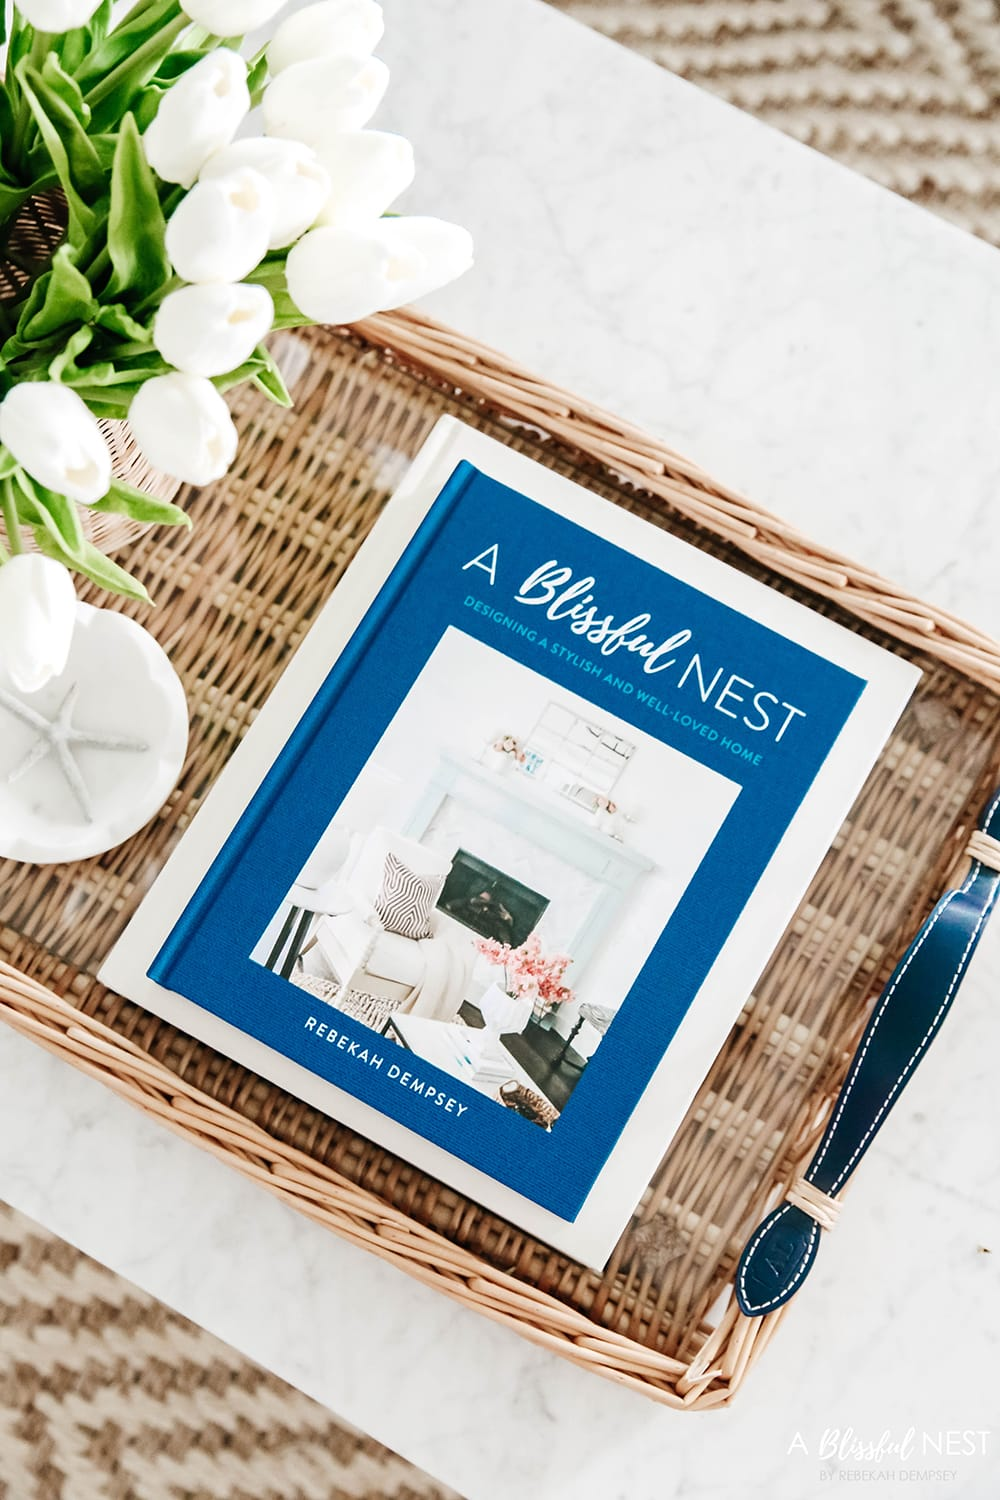 Preorder My Book!   A Blissful Nest – Designing a Stylish and Well-Loved Home